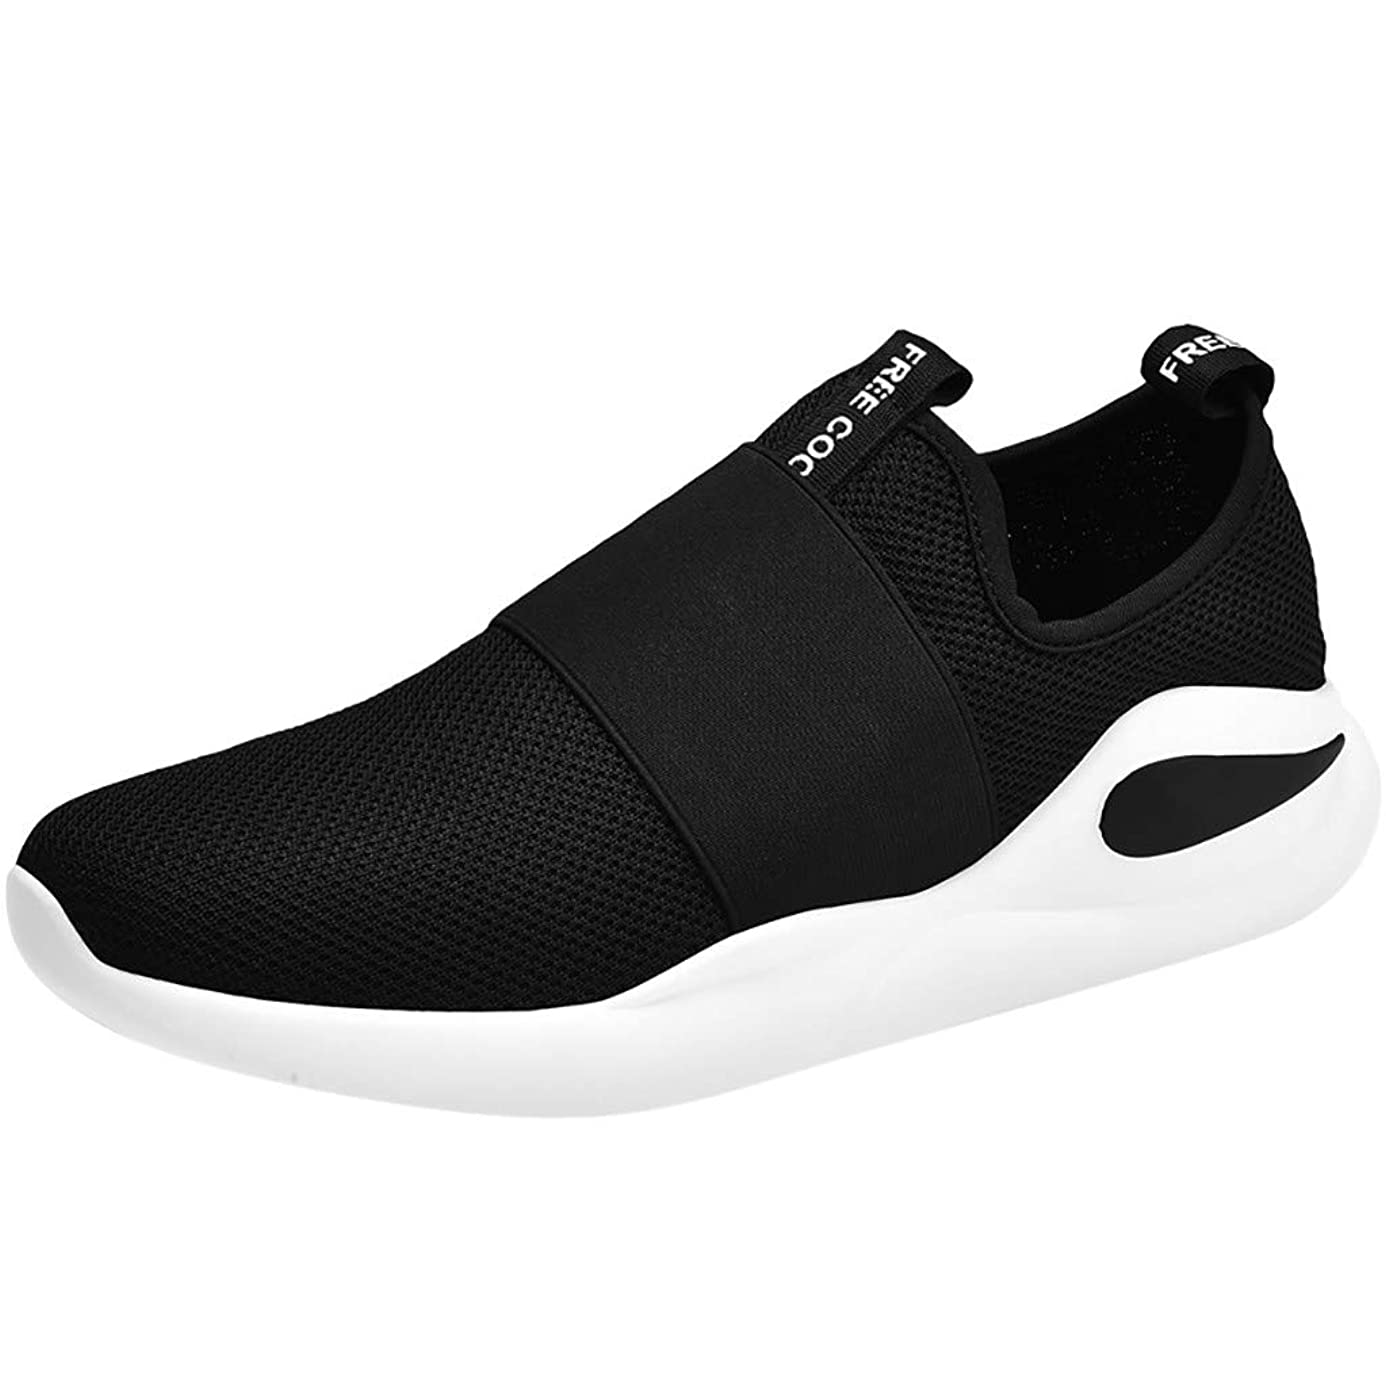 Mosunx Athletic Men's Mesh Slip On Breathable Sneakers, Boys Lightweight Comfortable Flat-Bottomed Sport Running Shoes Teen Student Casual Walking Shoes